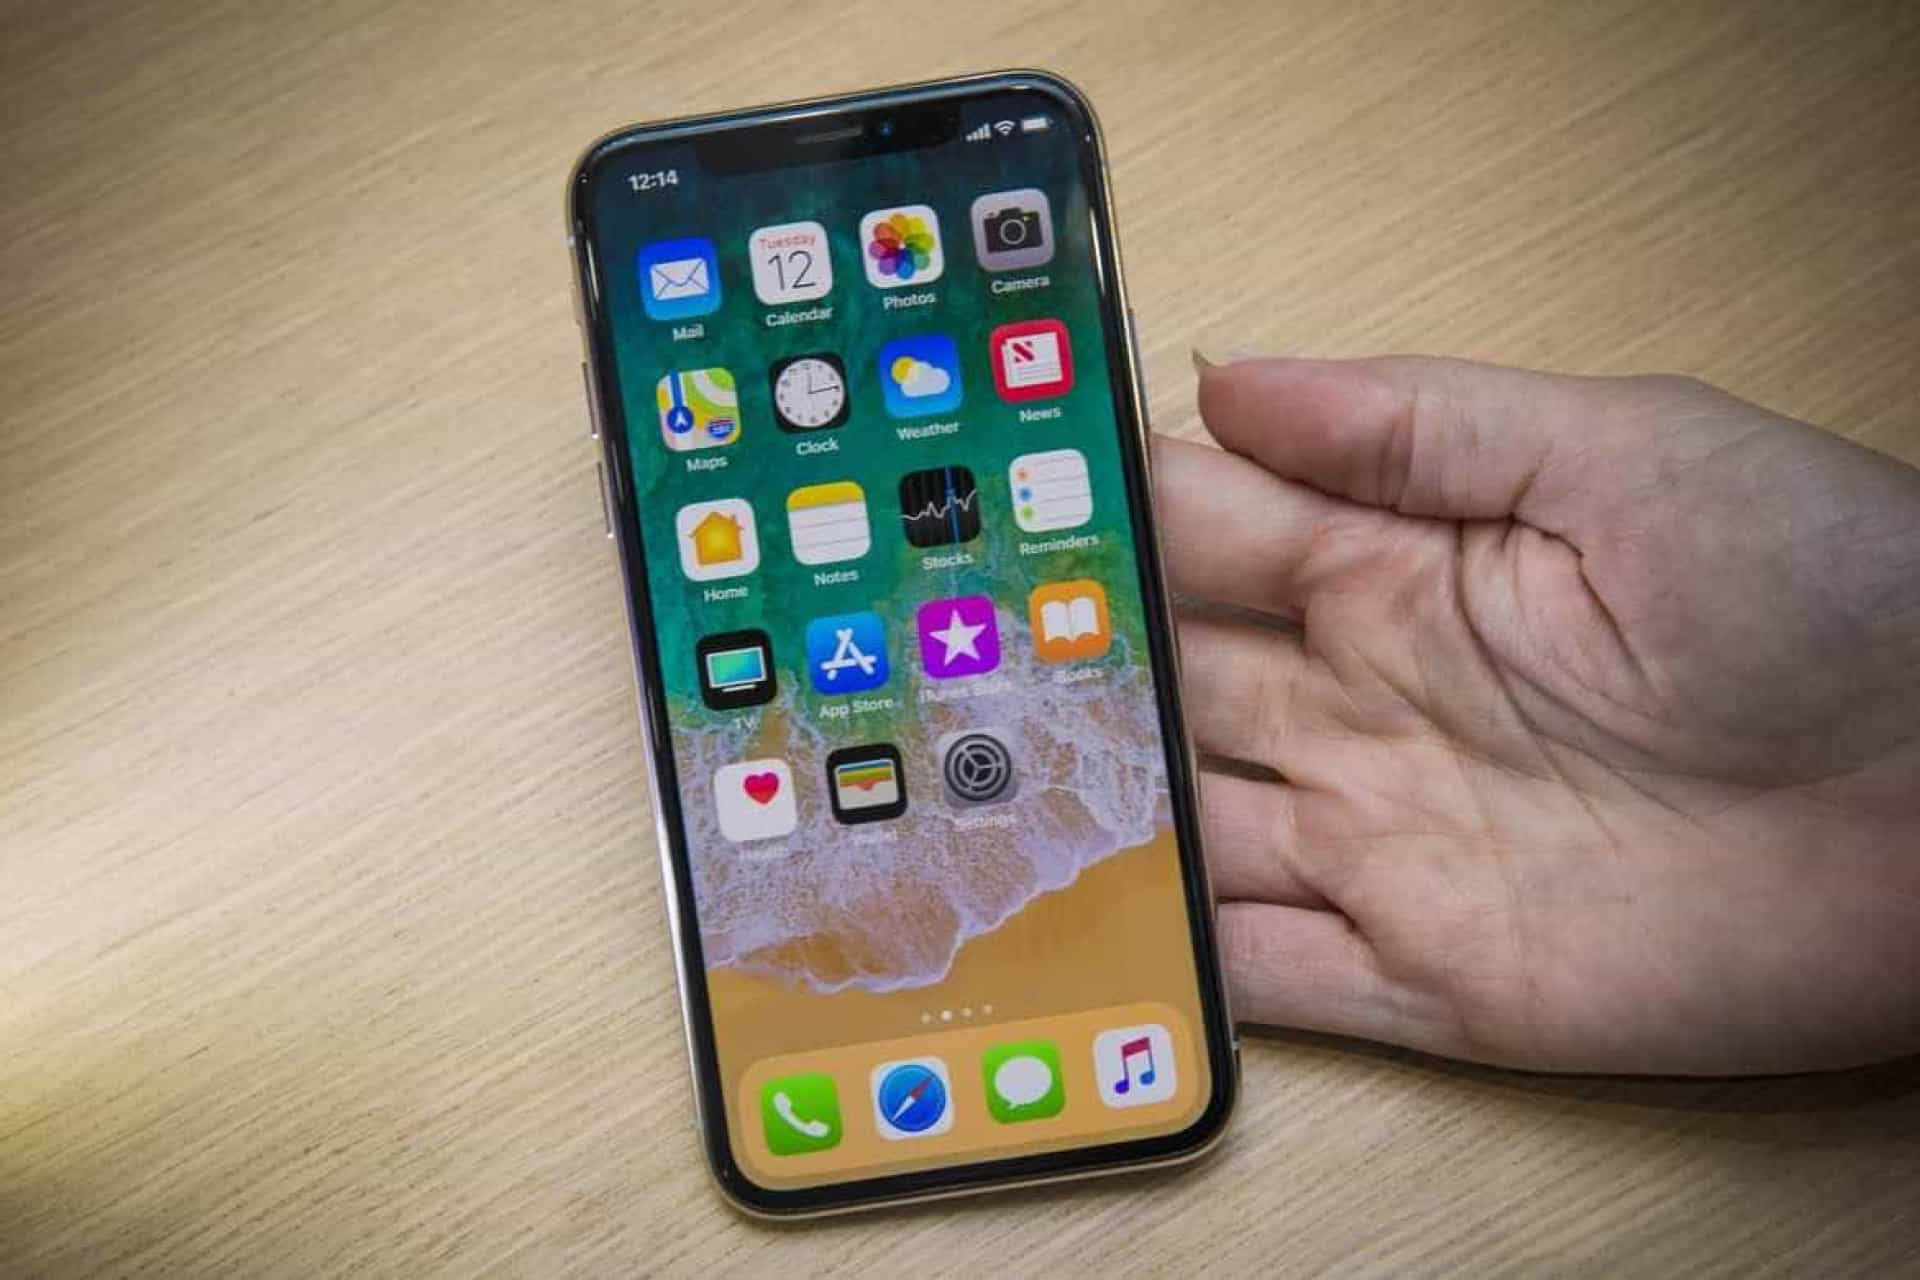 iPhone X: Eis as principais novidades do novo smartphone da Apple